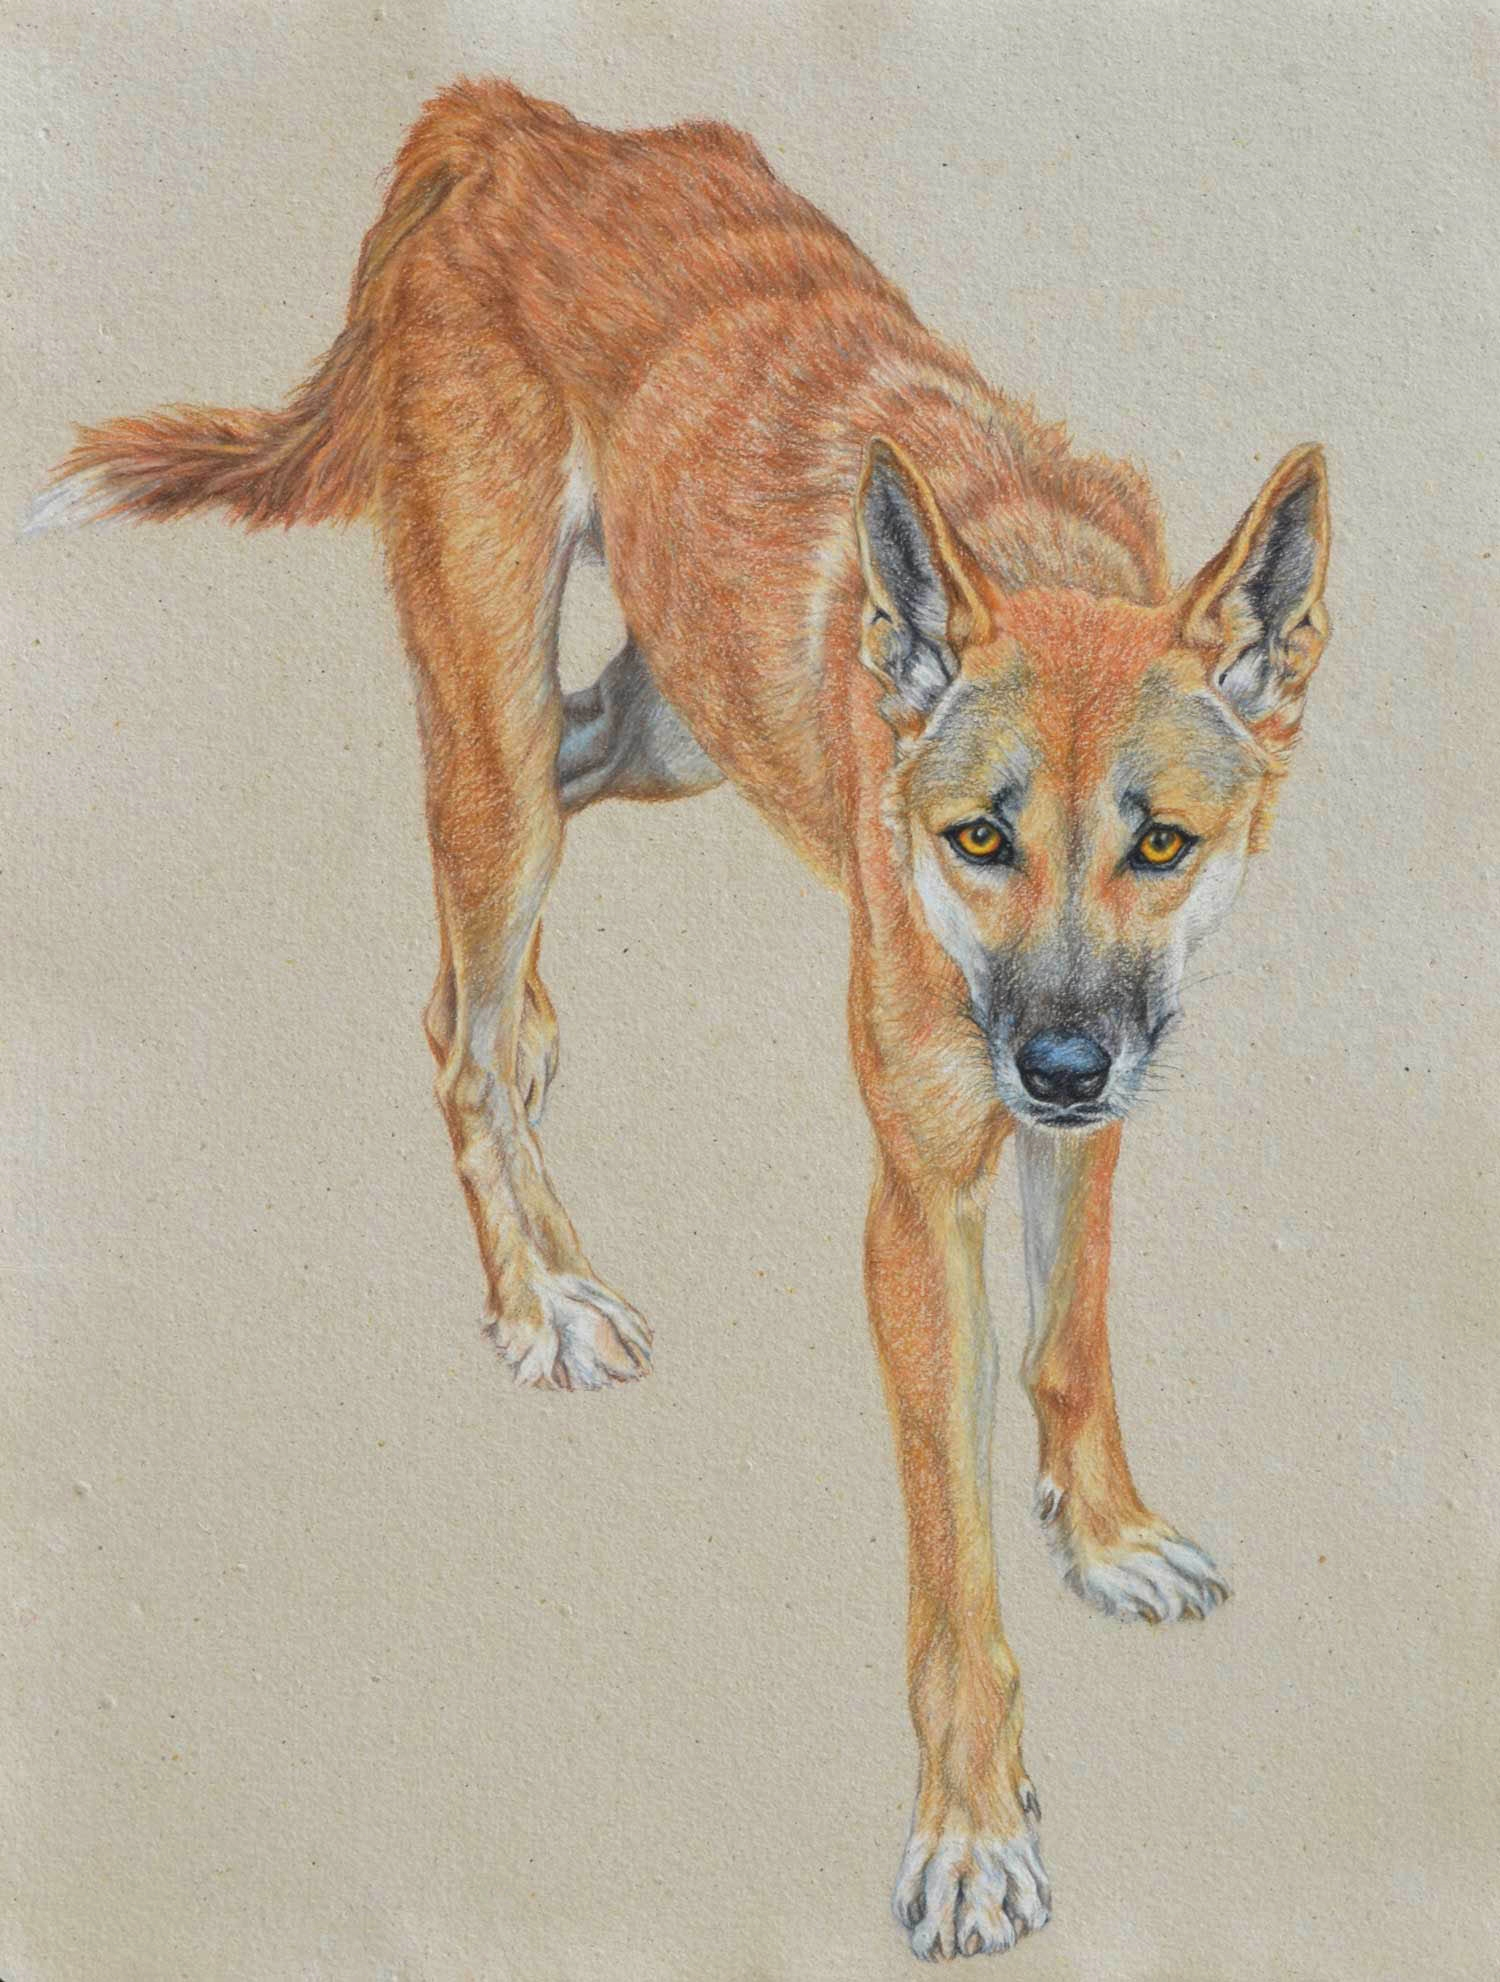 dingo-2-drawing-rachel-newling.jpg